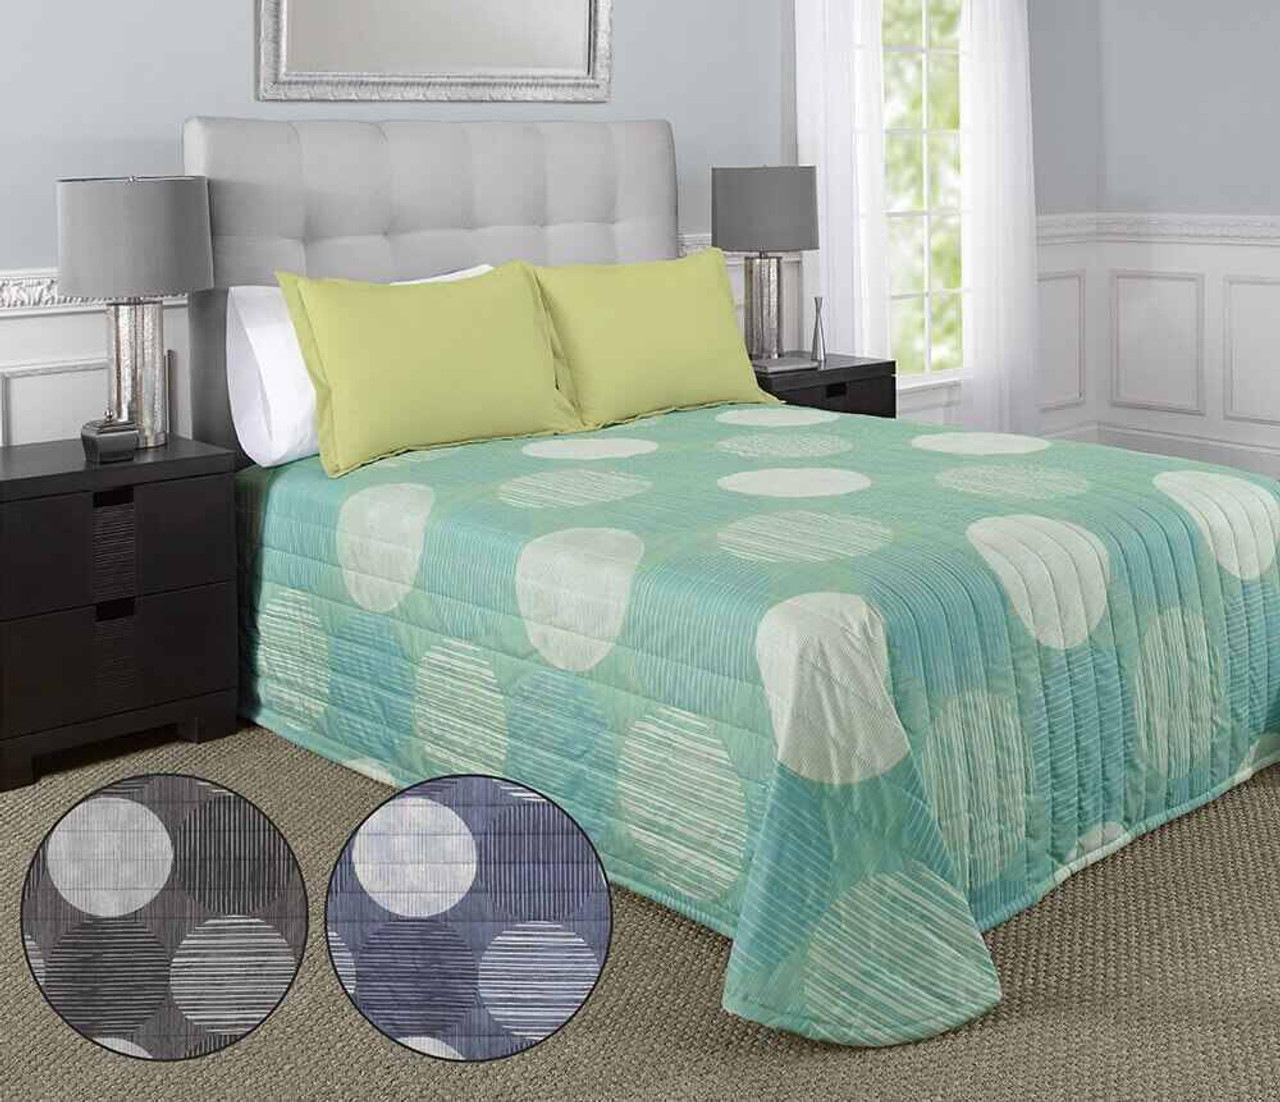 WestPoint/Martex Martex Rx or Comforter or Circles and Stripes or Sapphire